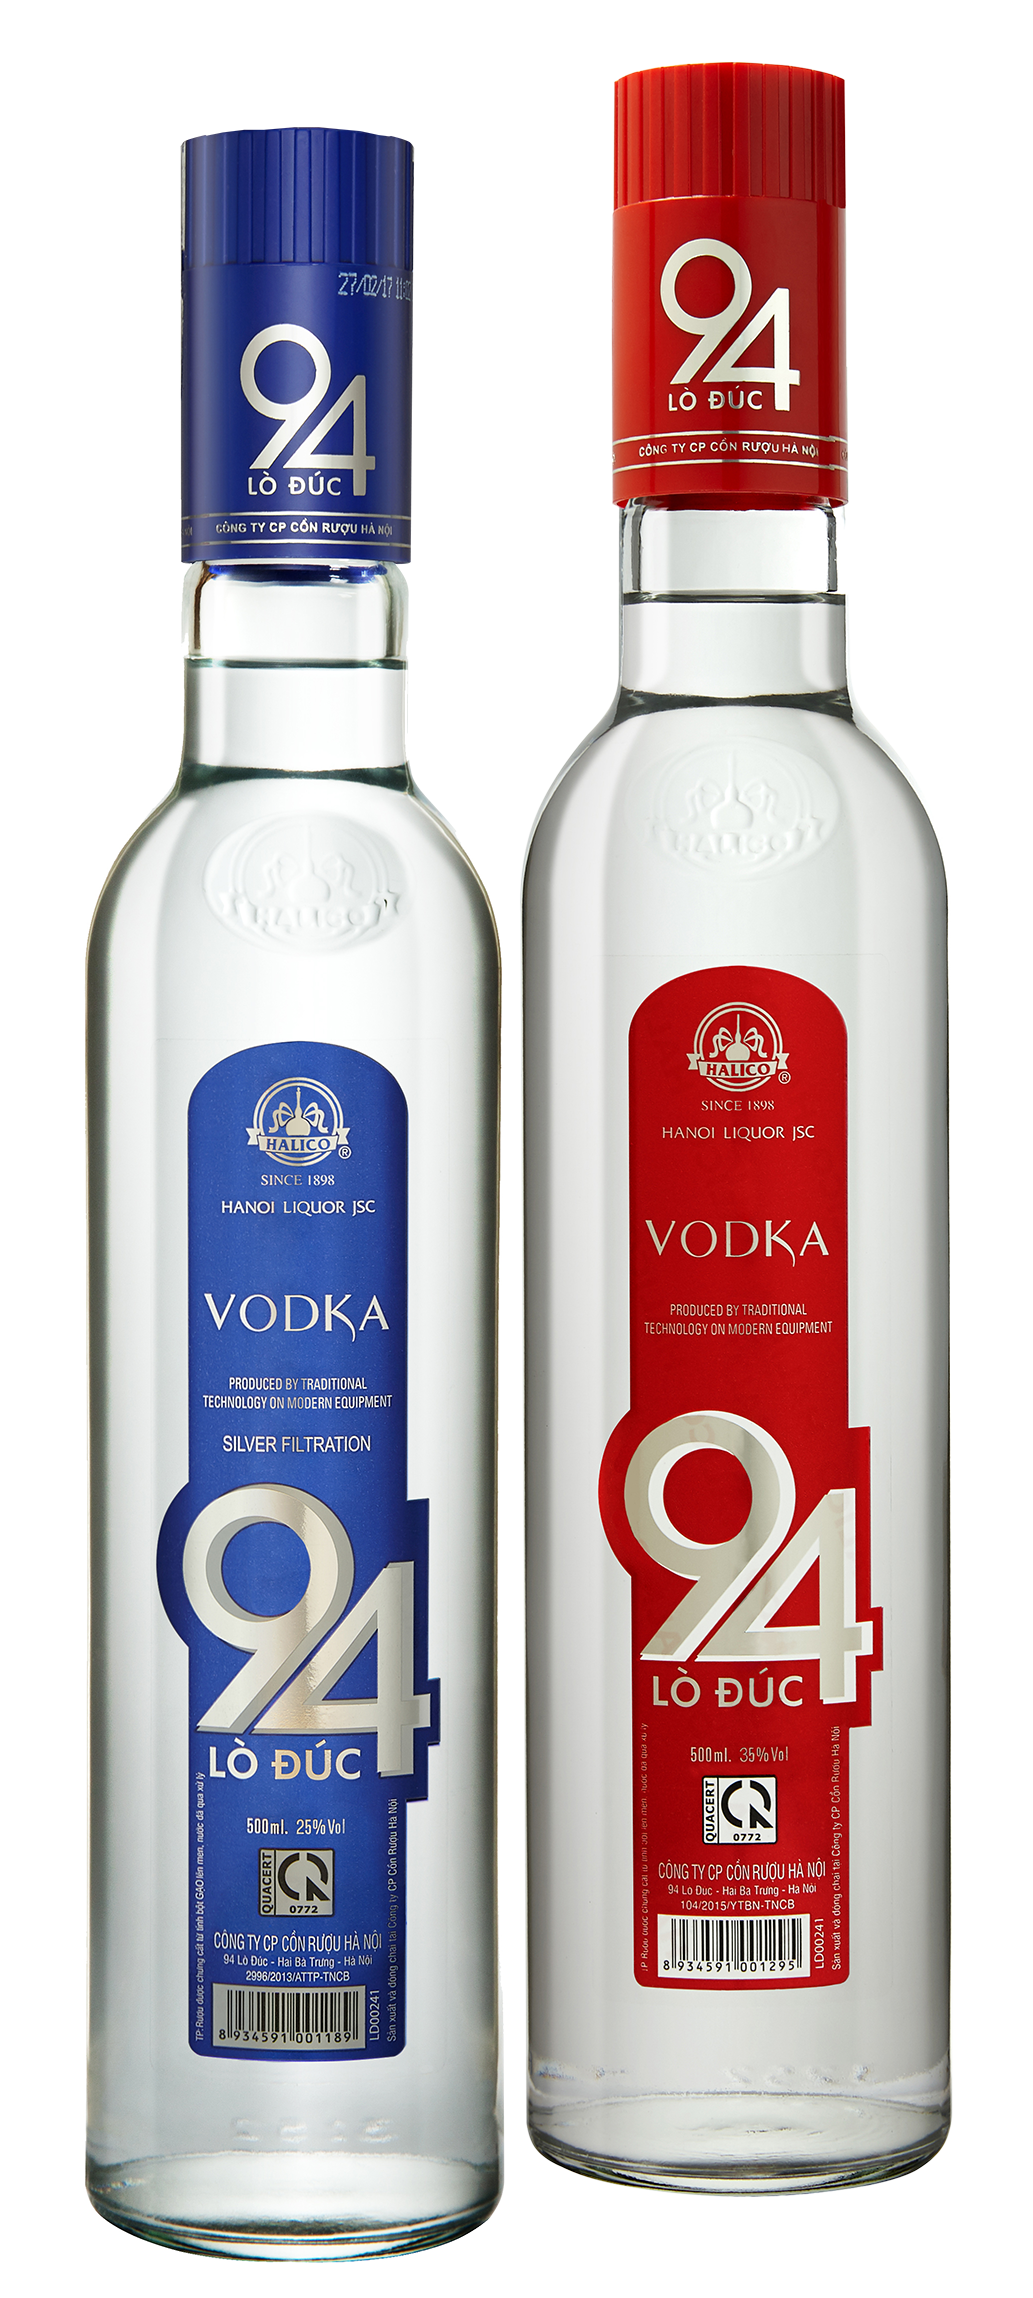 VODKA 94 LÒ ĐÚC